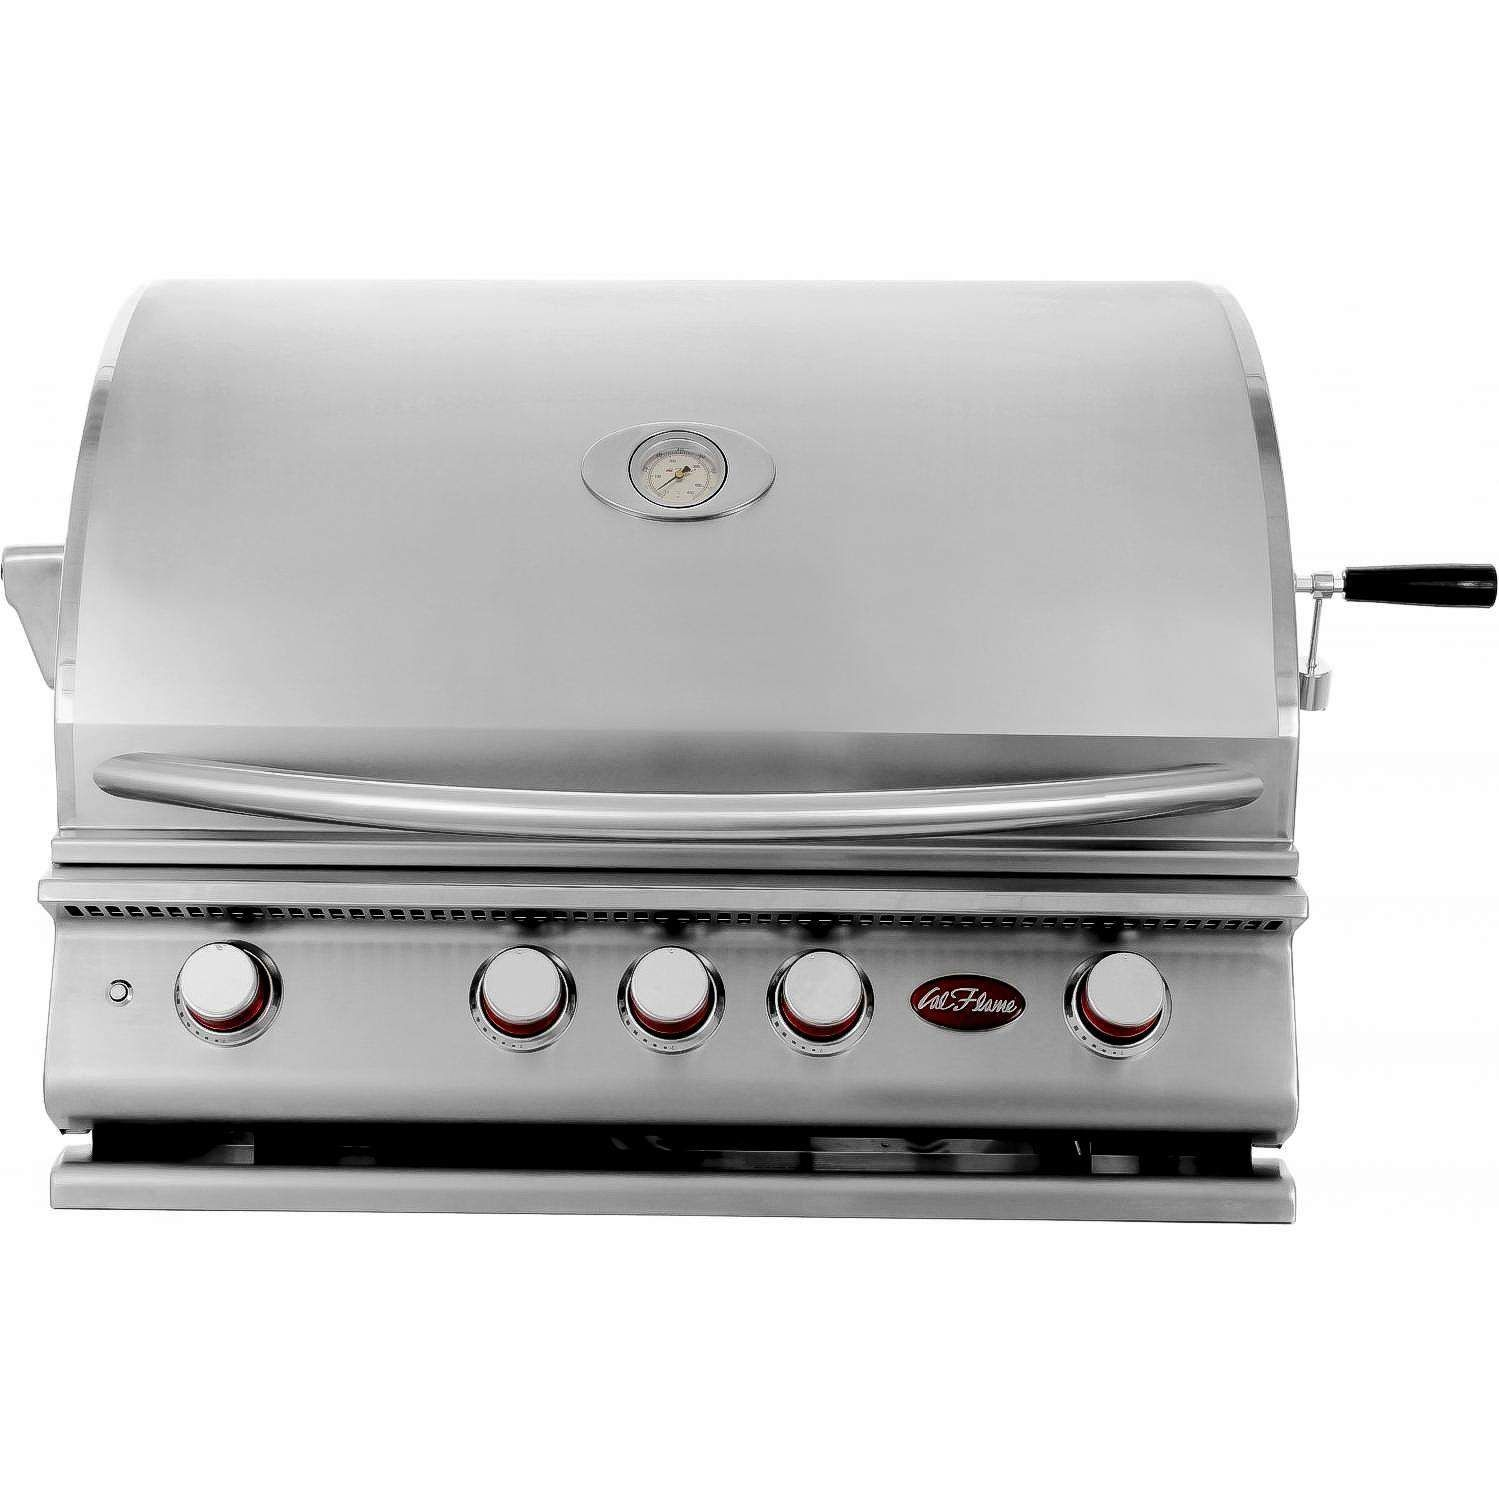 Cal Flame P4 32 4 Burner Built In Propane Gas Bbq Grill With Rotisserie Bbq18p04 Propane Gas Grill Cal Flame Built In Gas Grills